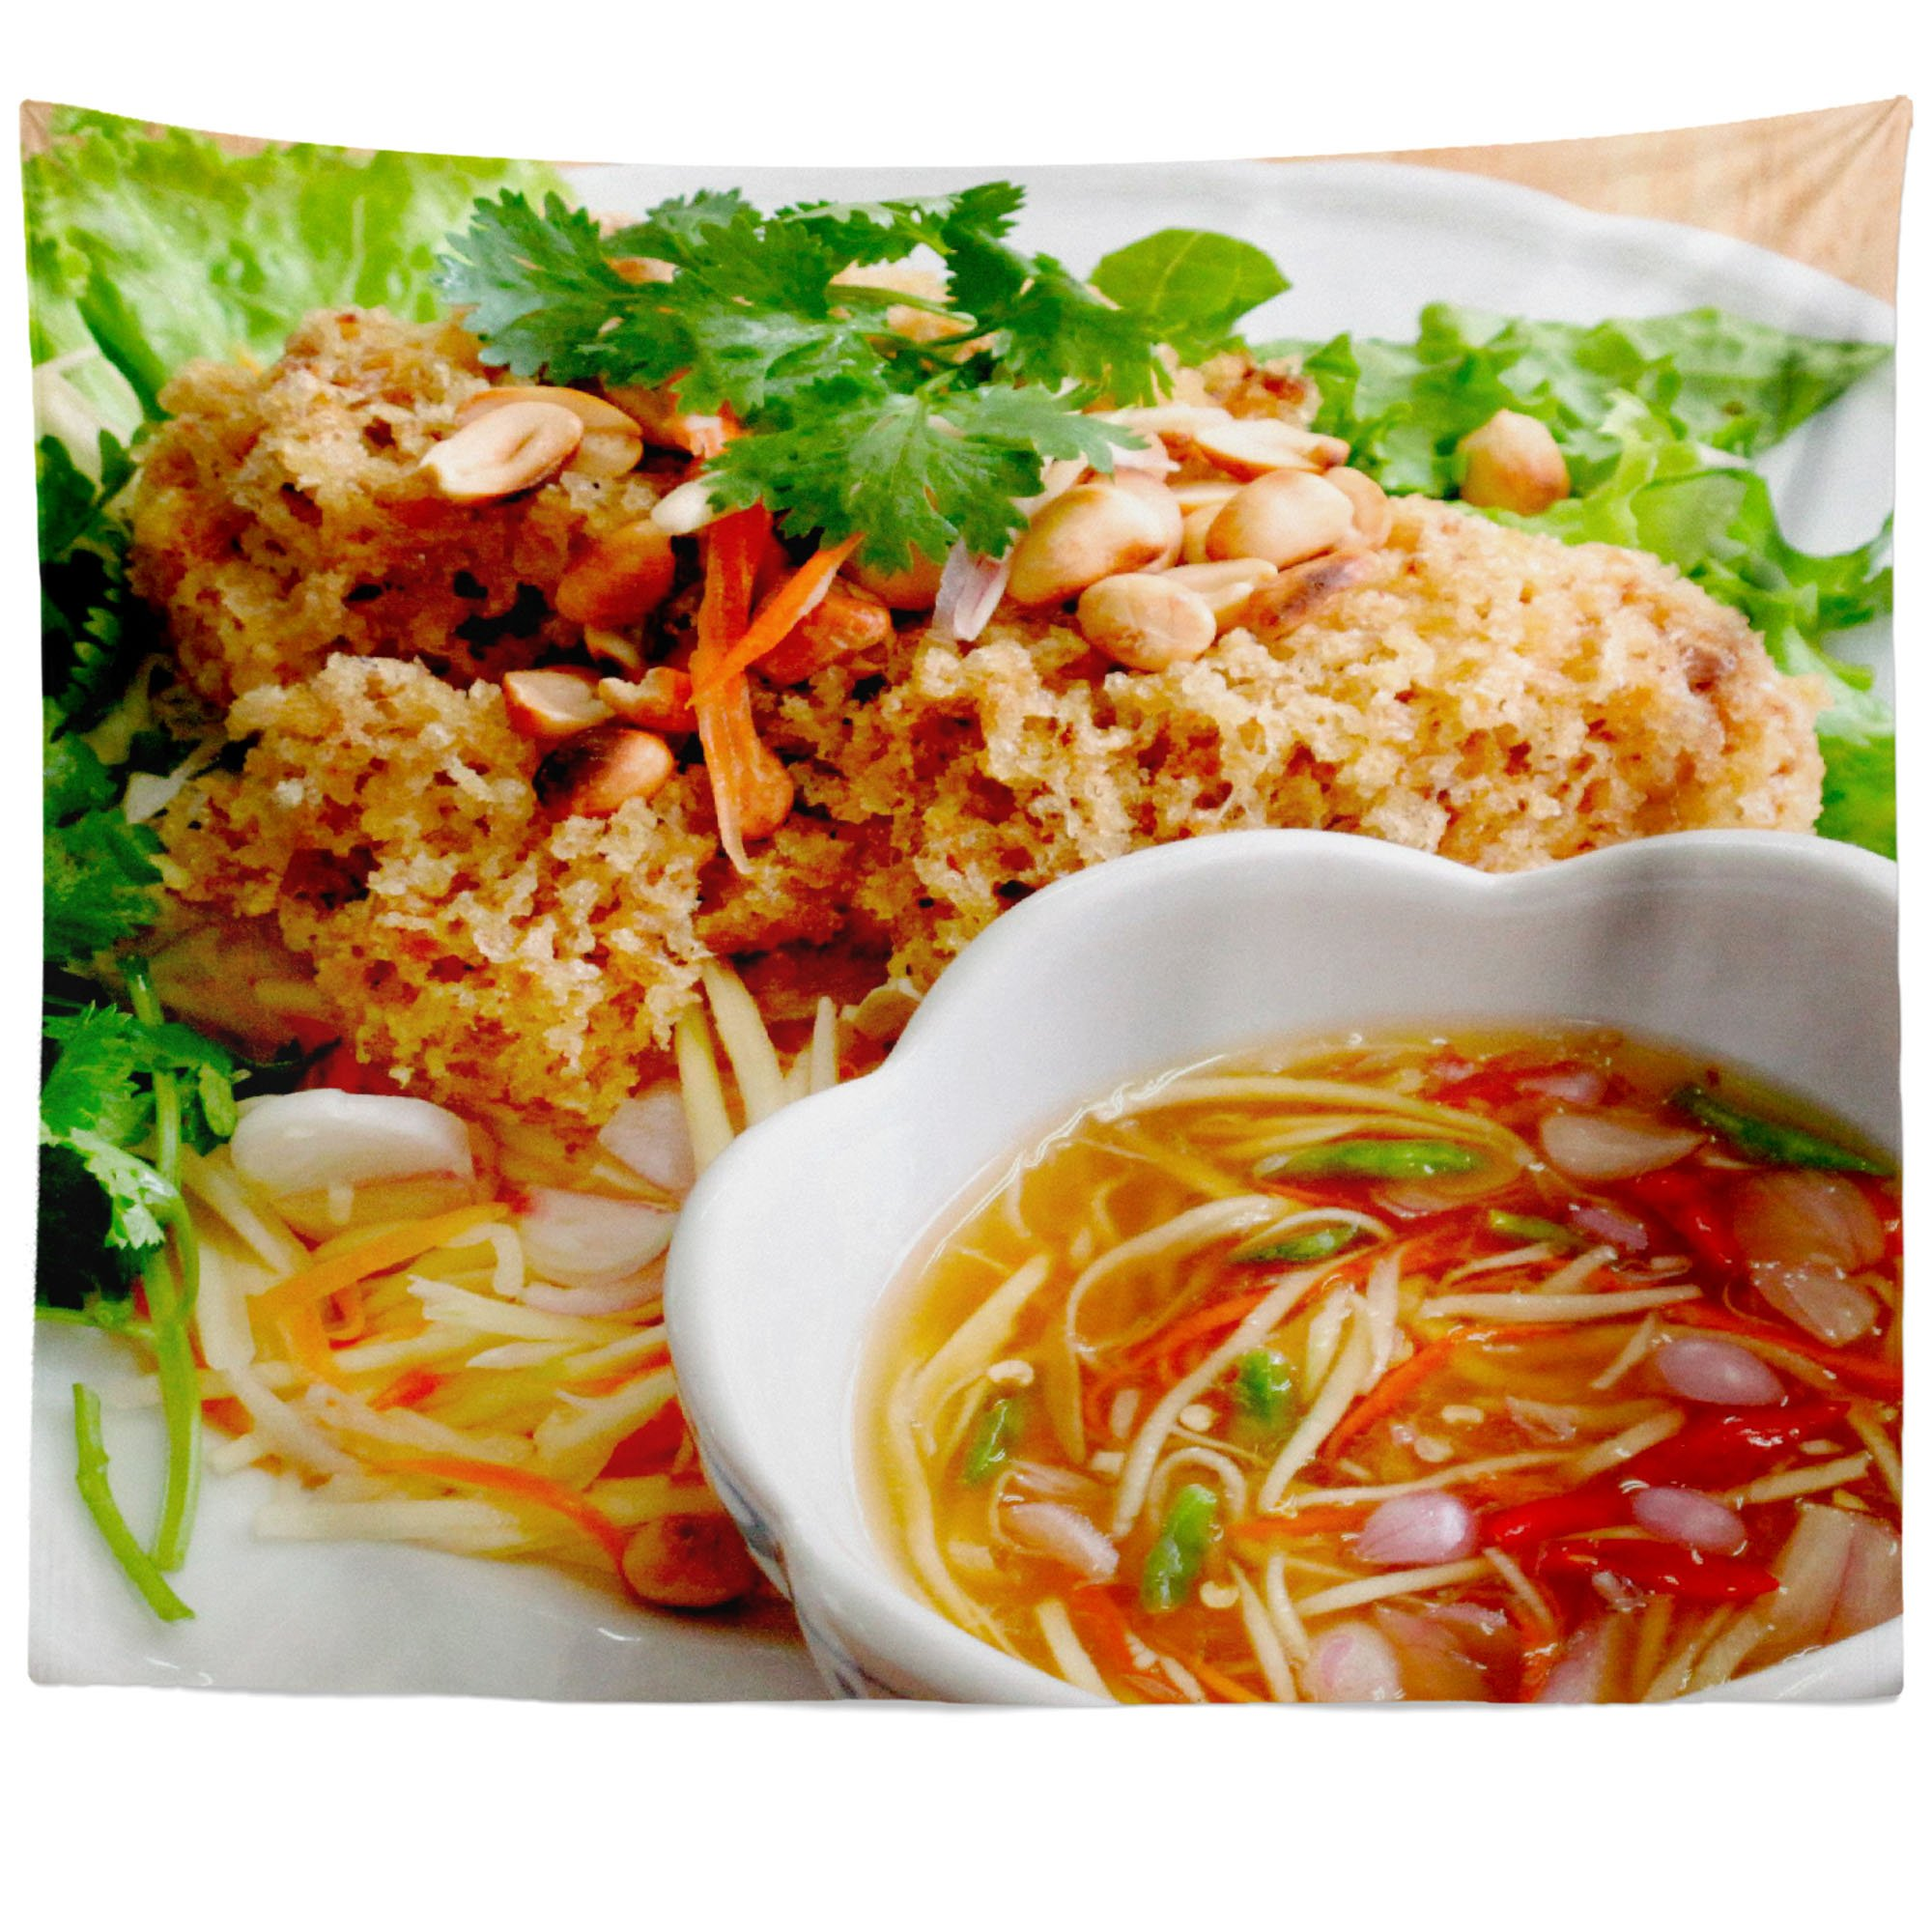 Westlake Art - Food Thai - Wall Hanging Tapestry - Picture Photography Artwork Home Decor Living Room - 68x80 Inch (AC795)